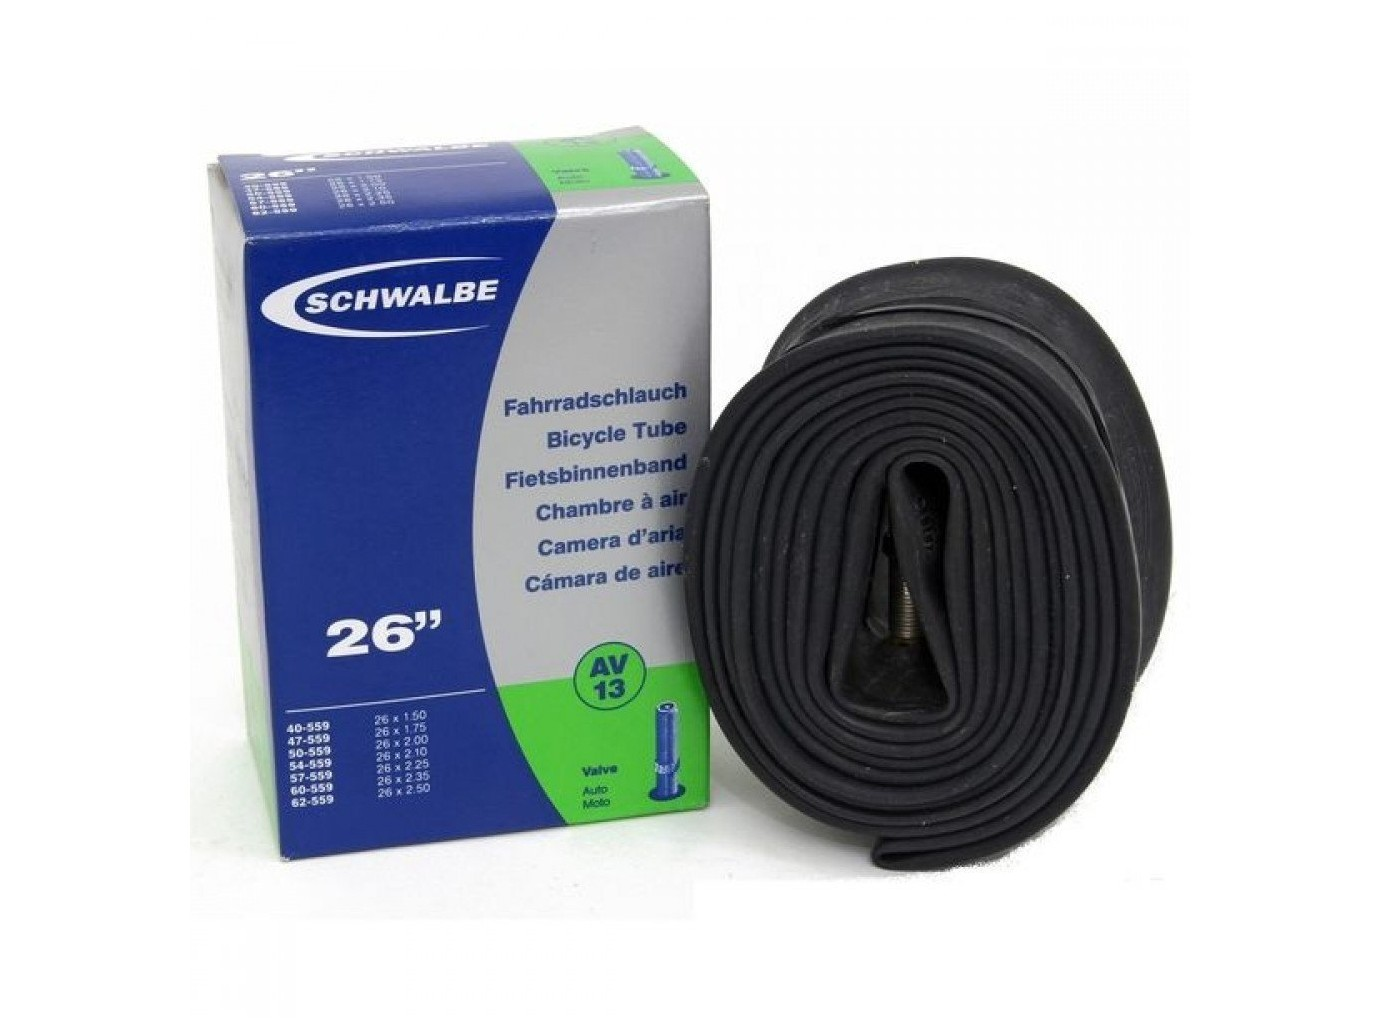 Schwalbe chambre air vtt av13 26p schr der 40mm etrto for Chambre a air vtt increvable